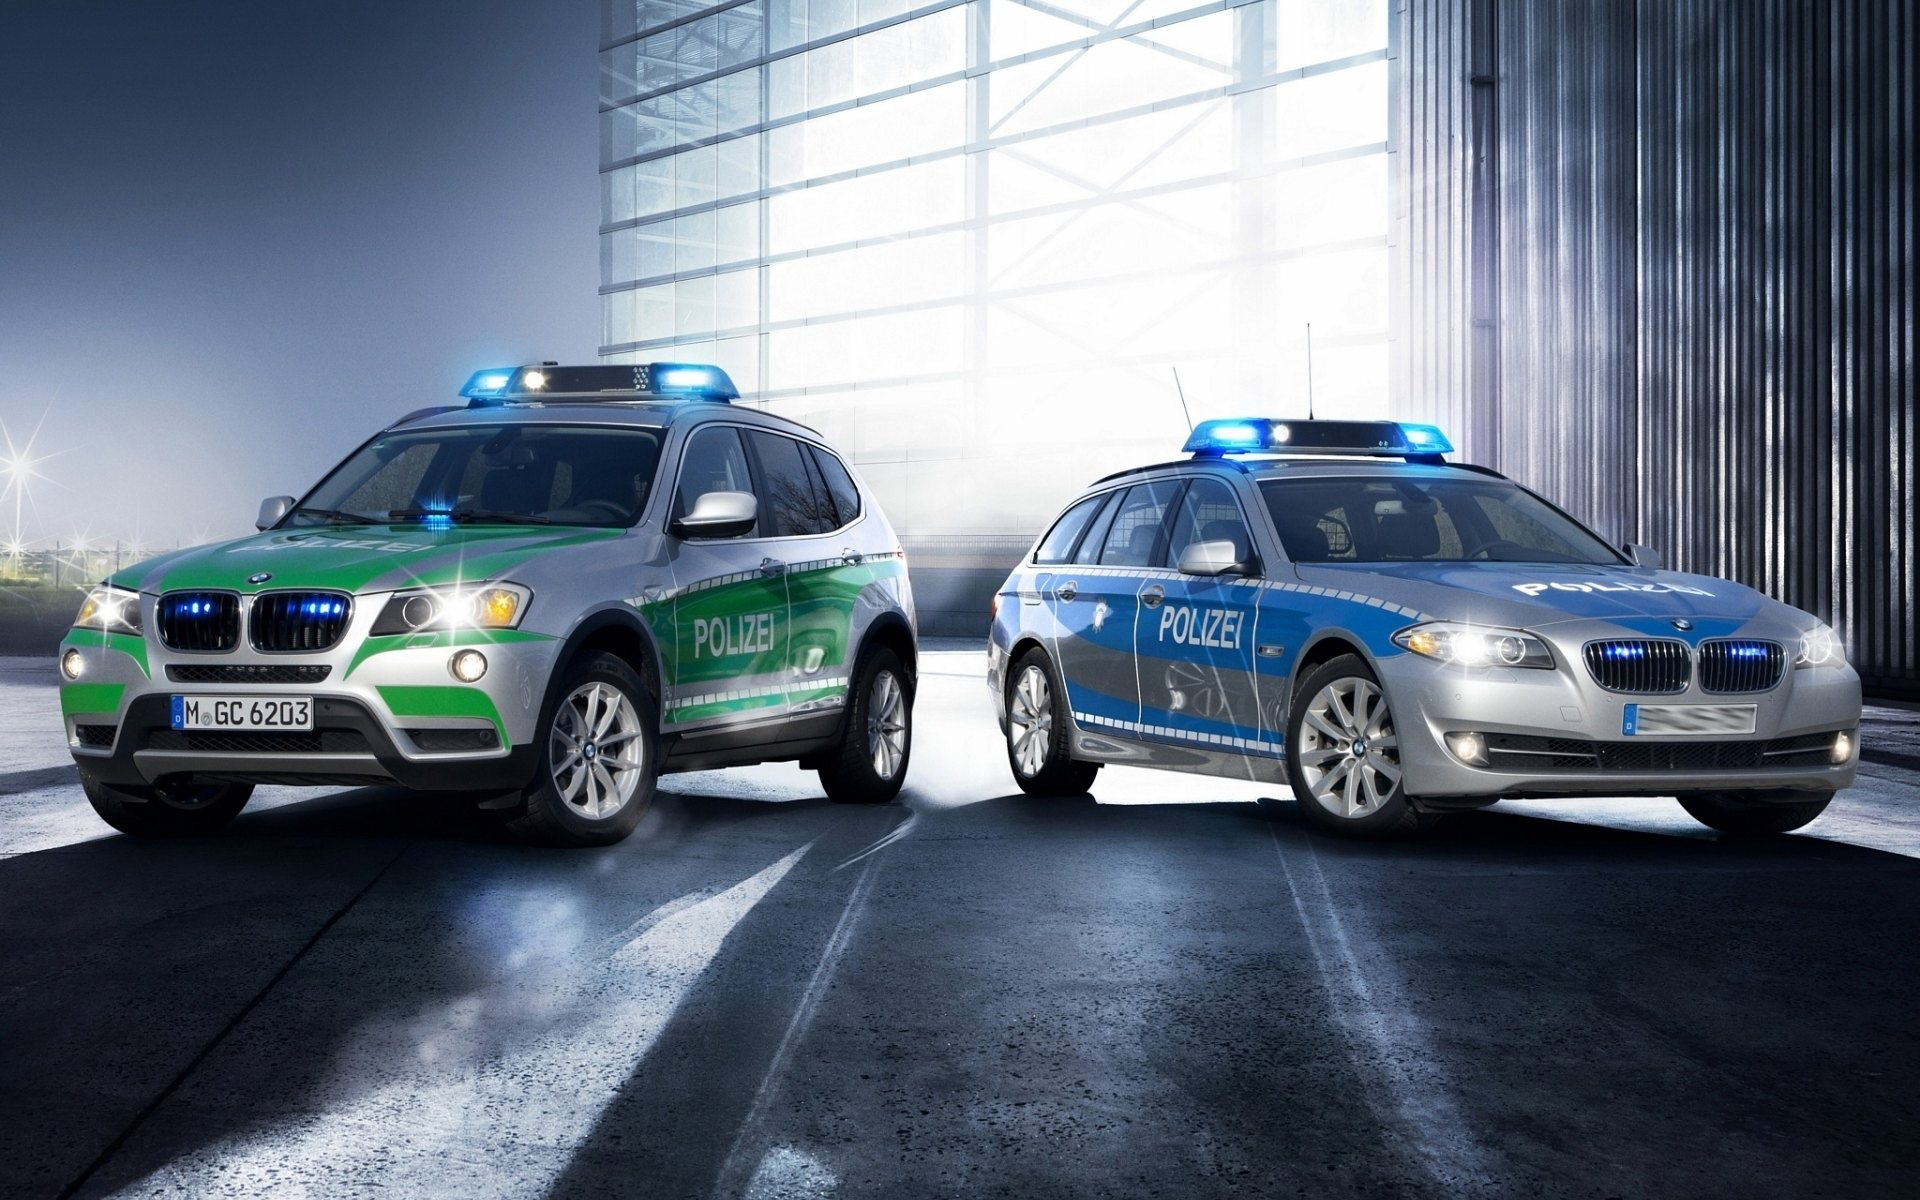 Police Car wallpapers HD   561146 1920x1200